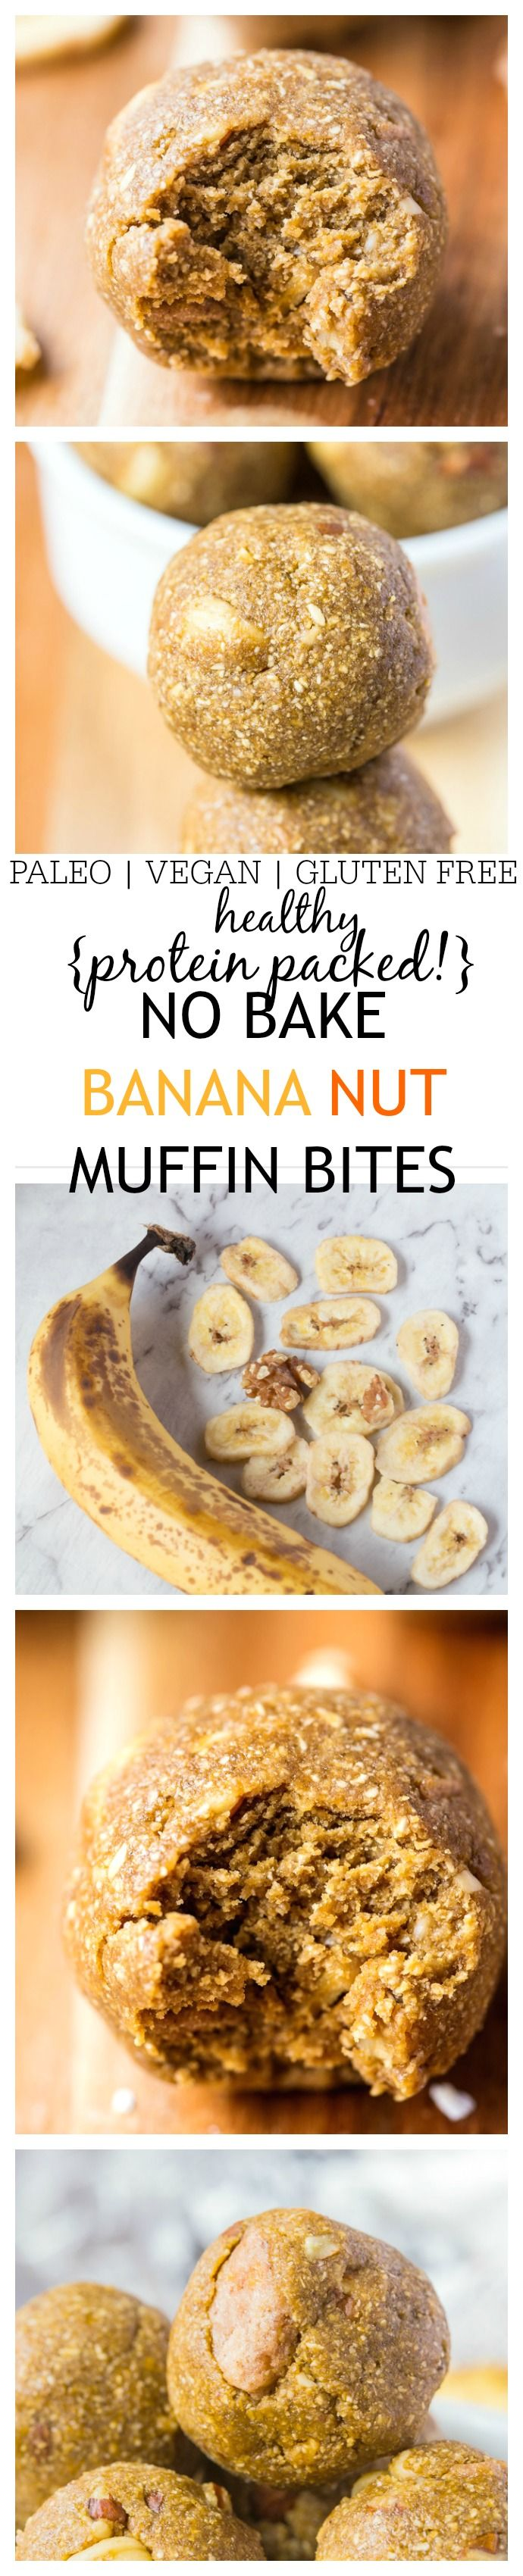 Healthy {Protein Packed!} No Bake Banana Nut Muffin Bites- The doughy taste and texture of a bakery style banana nut muffin yet requiring no baking, flour, butter or oil! {vegan, gluten-free, paleo options}